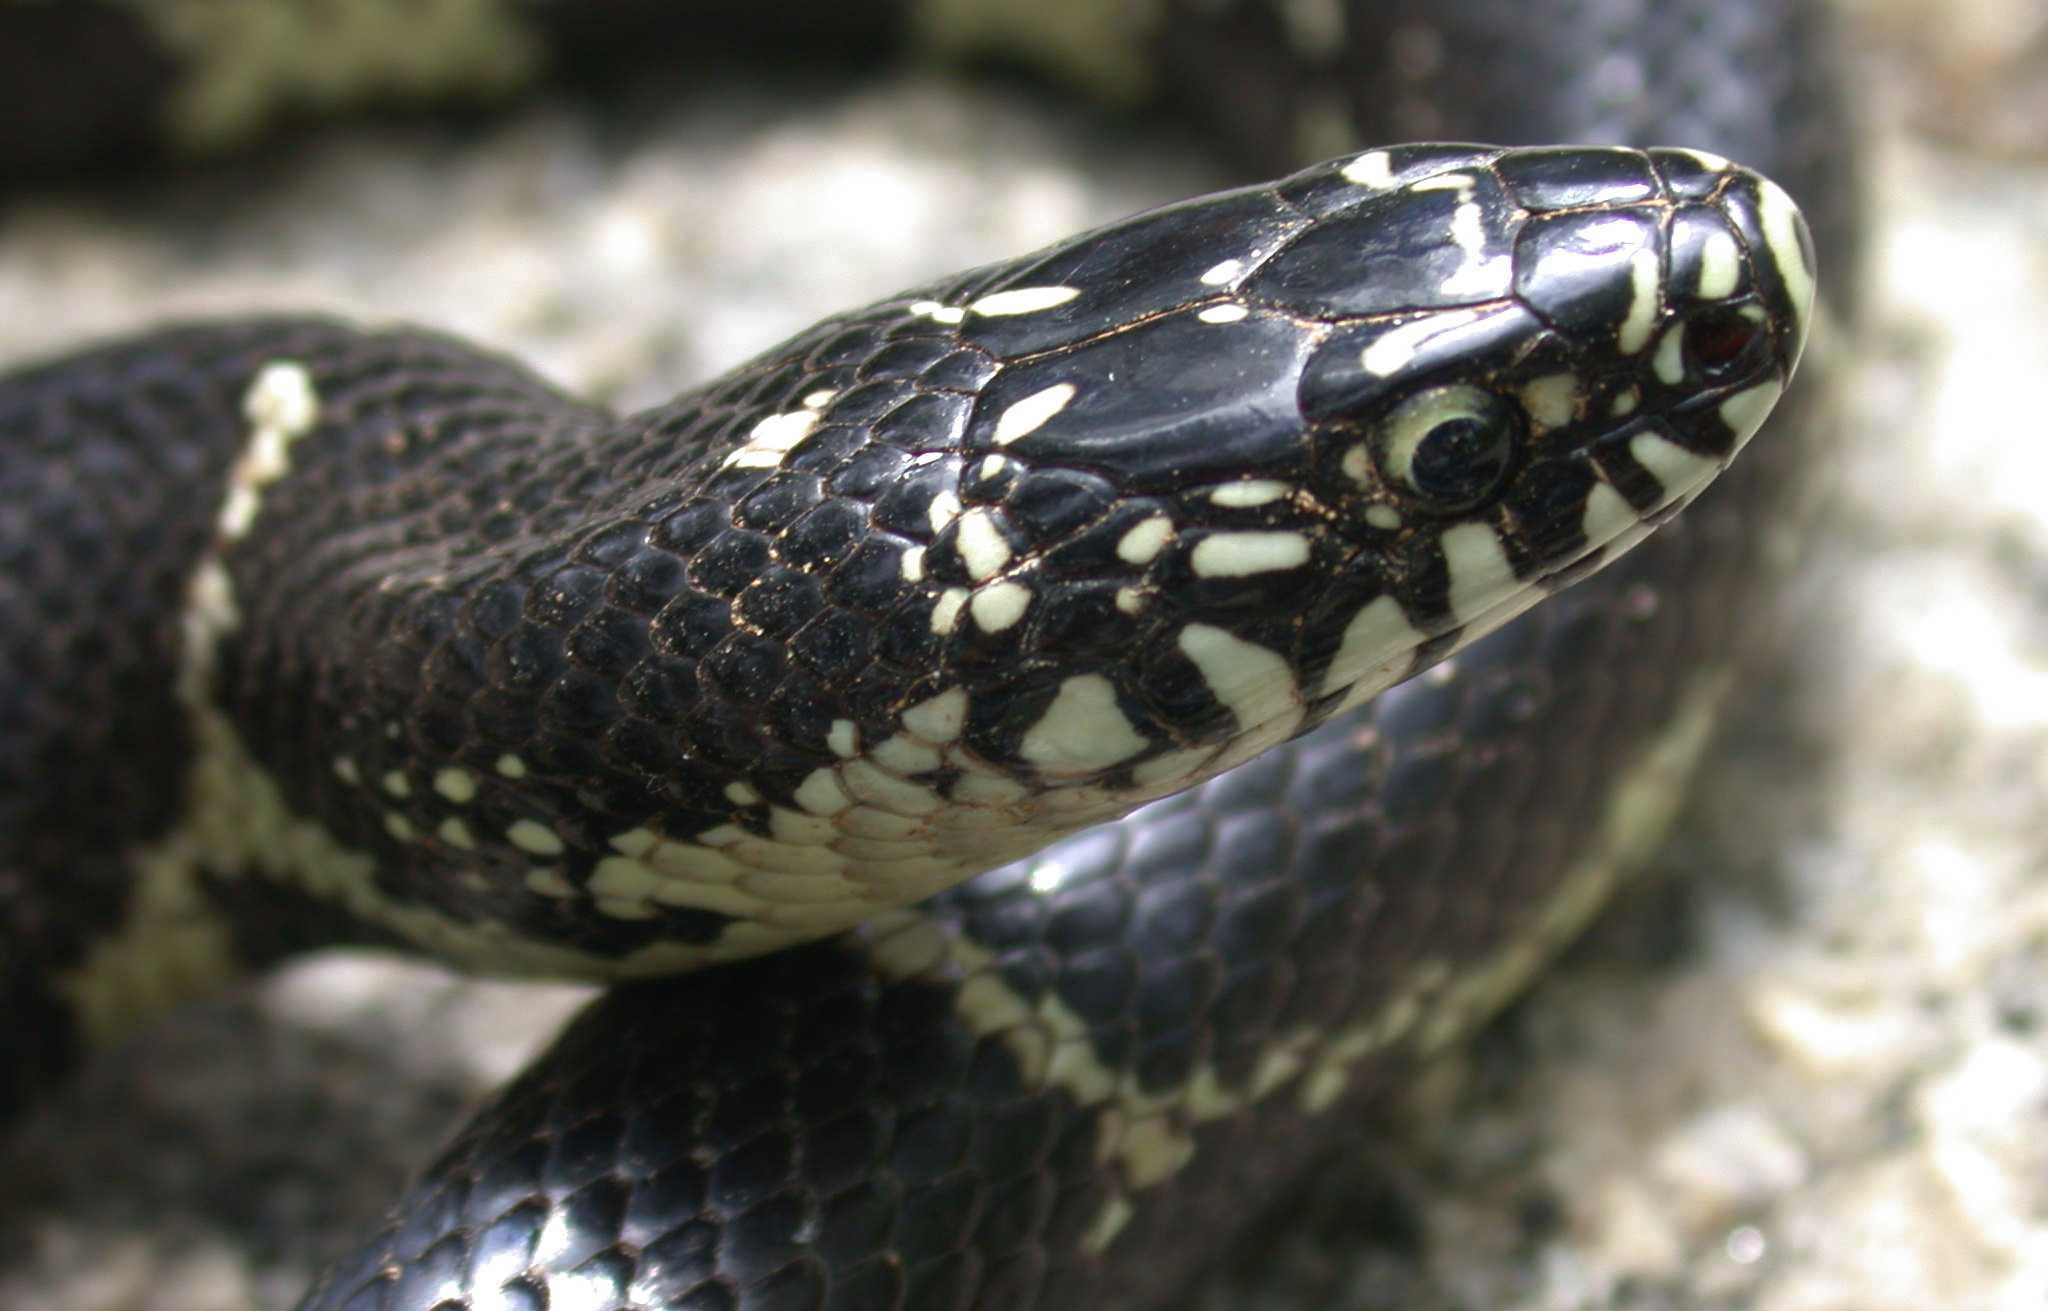 Lampropeltis getula - 4.14.02 - Lansdford Canal SP, SC - close head shot copy